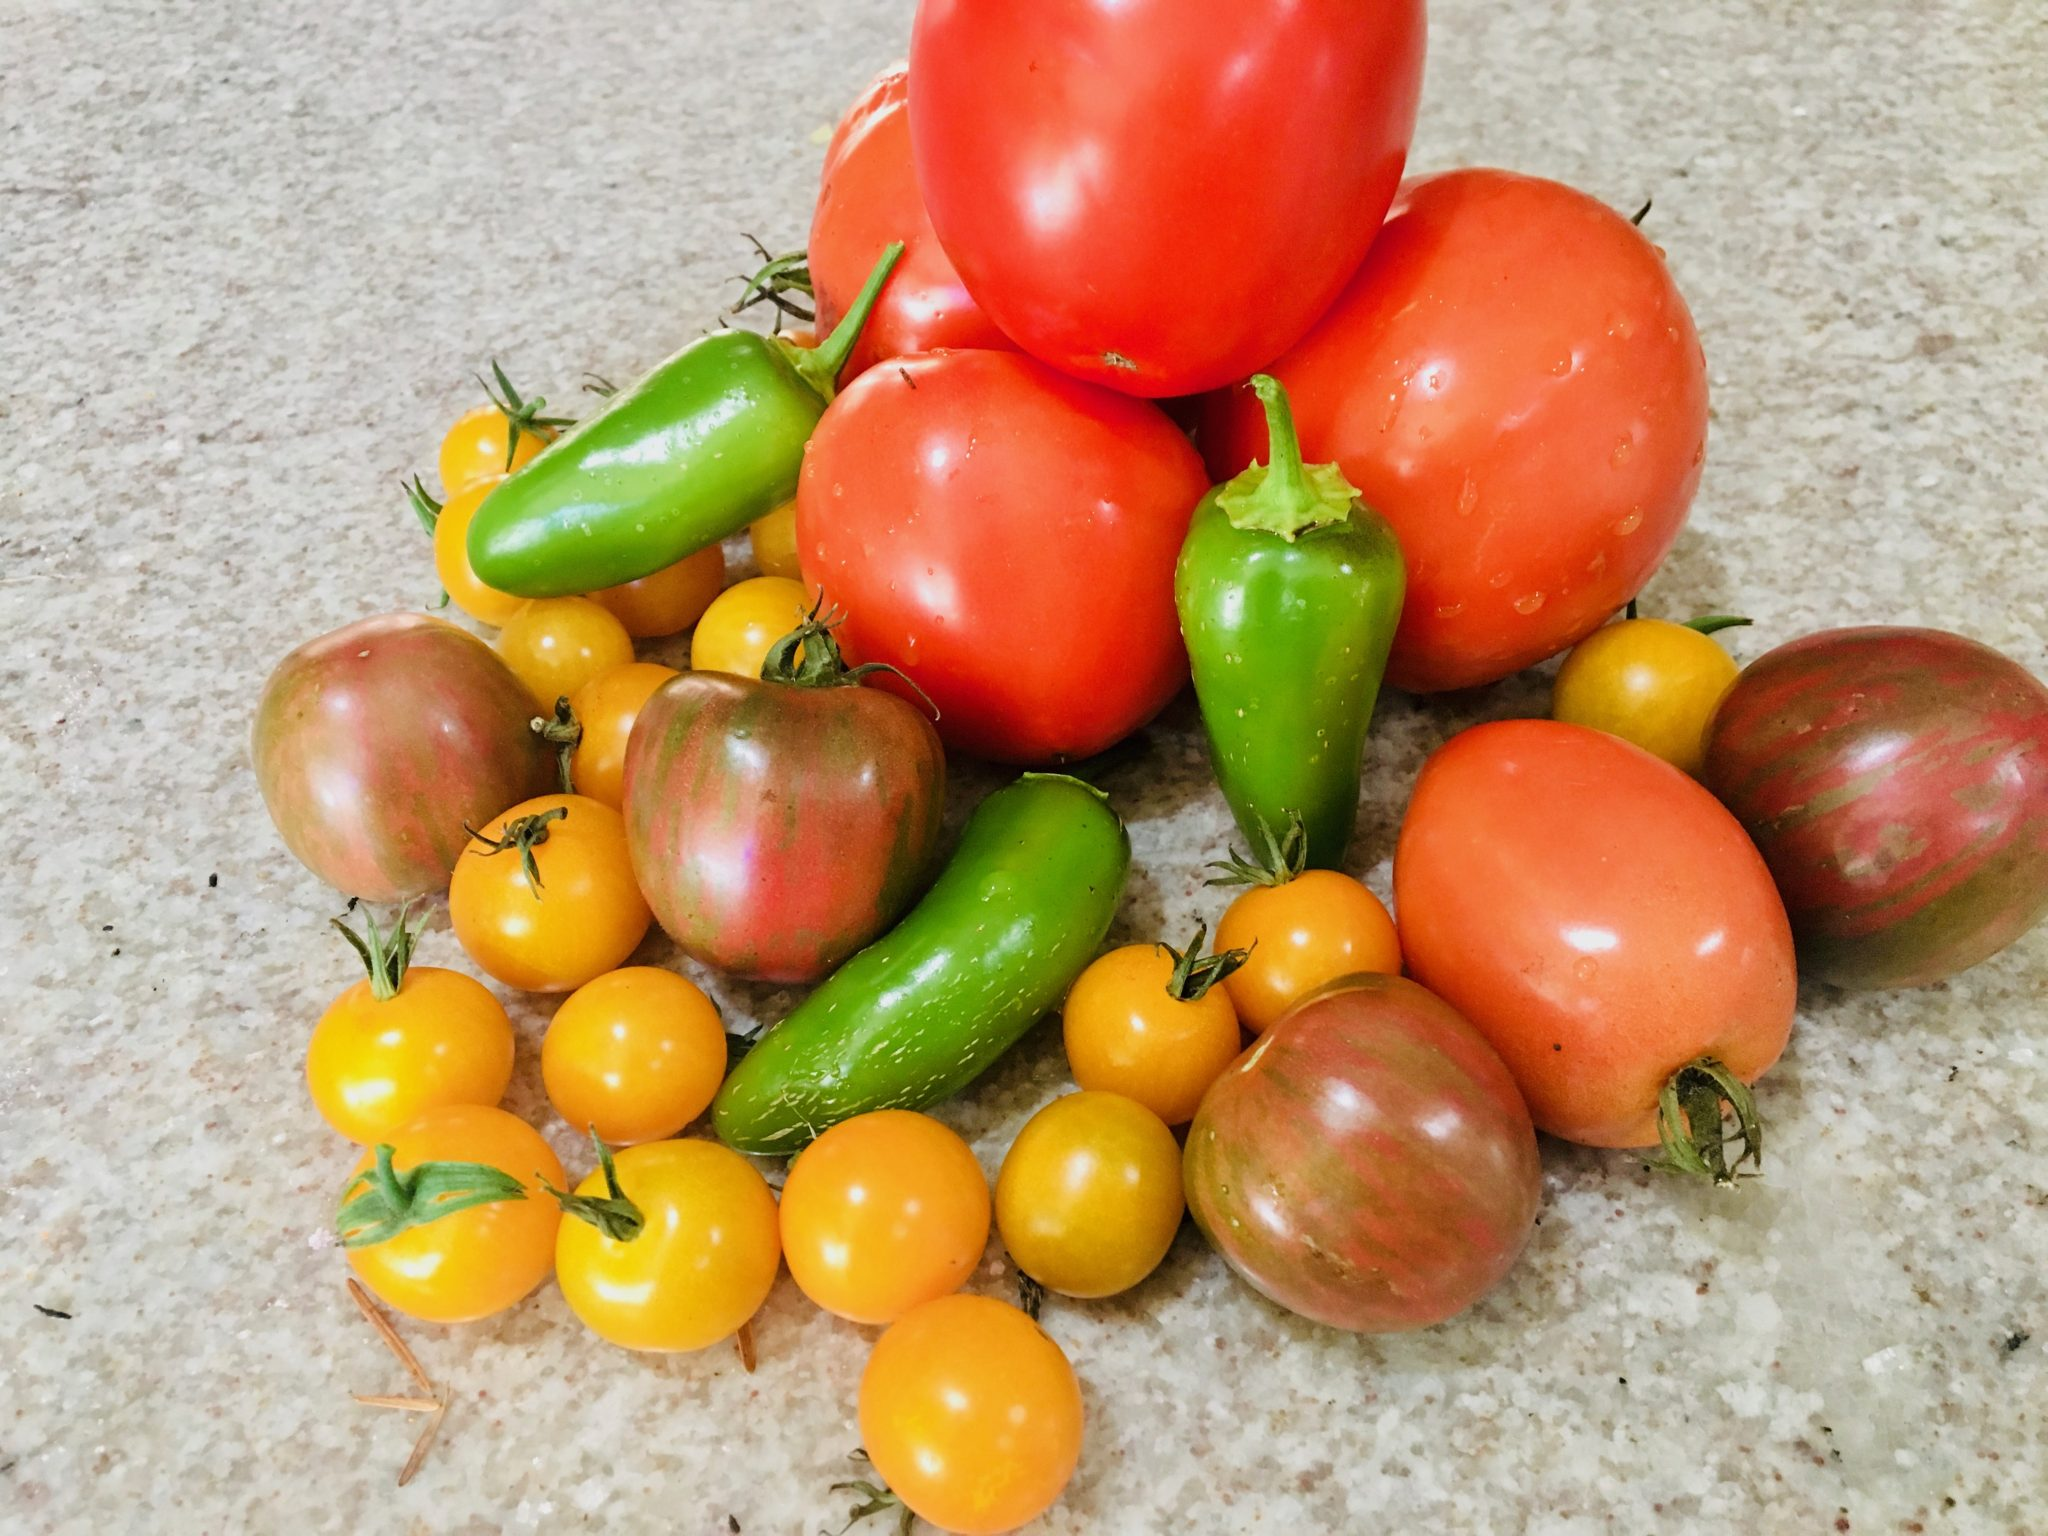 Tomatoes and Jalepenos